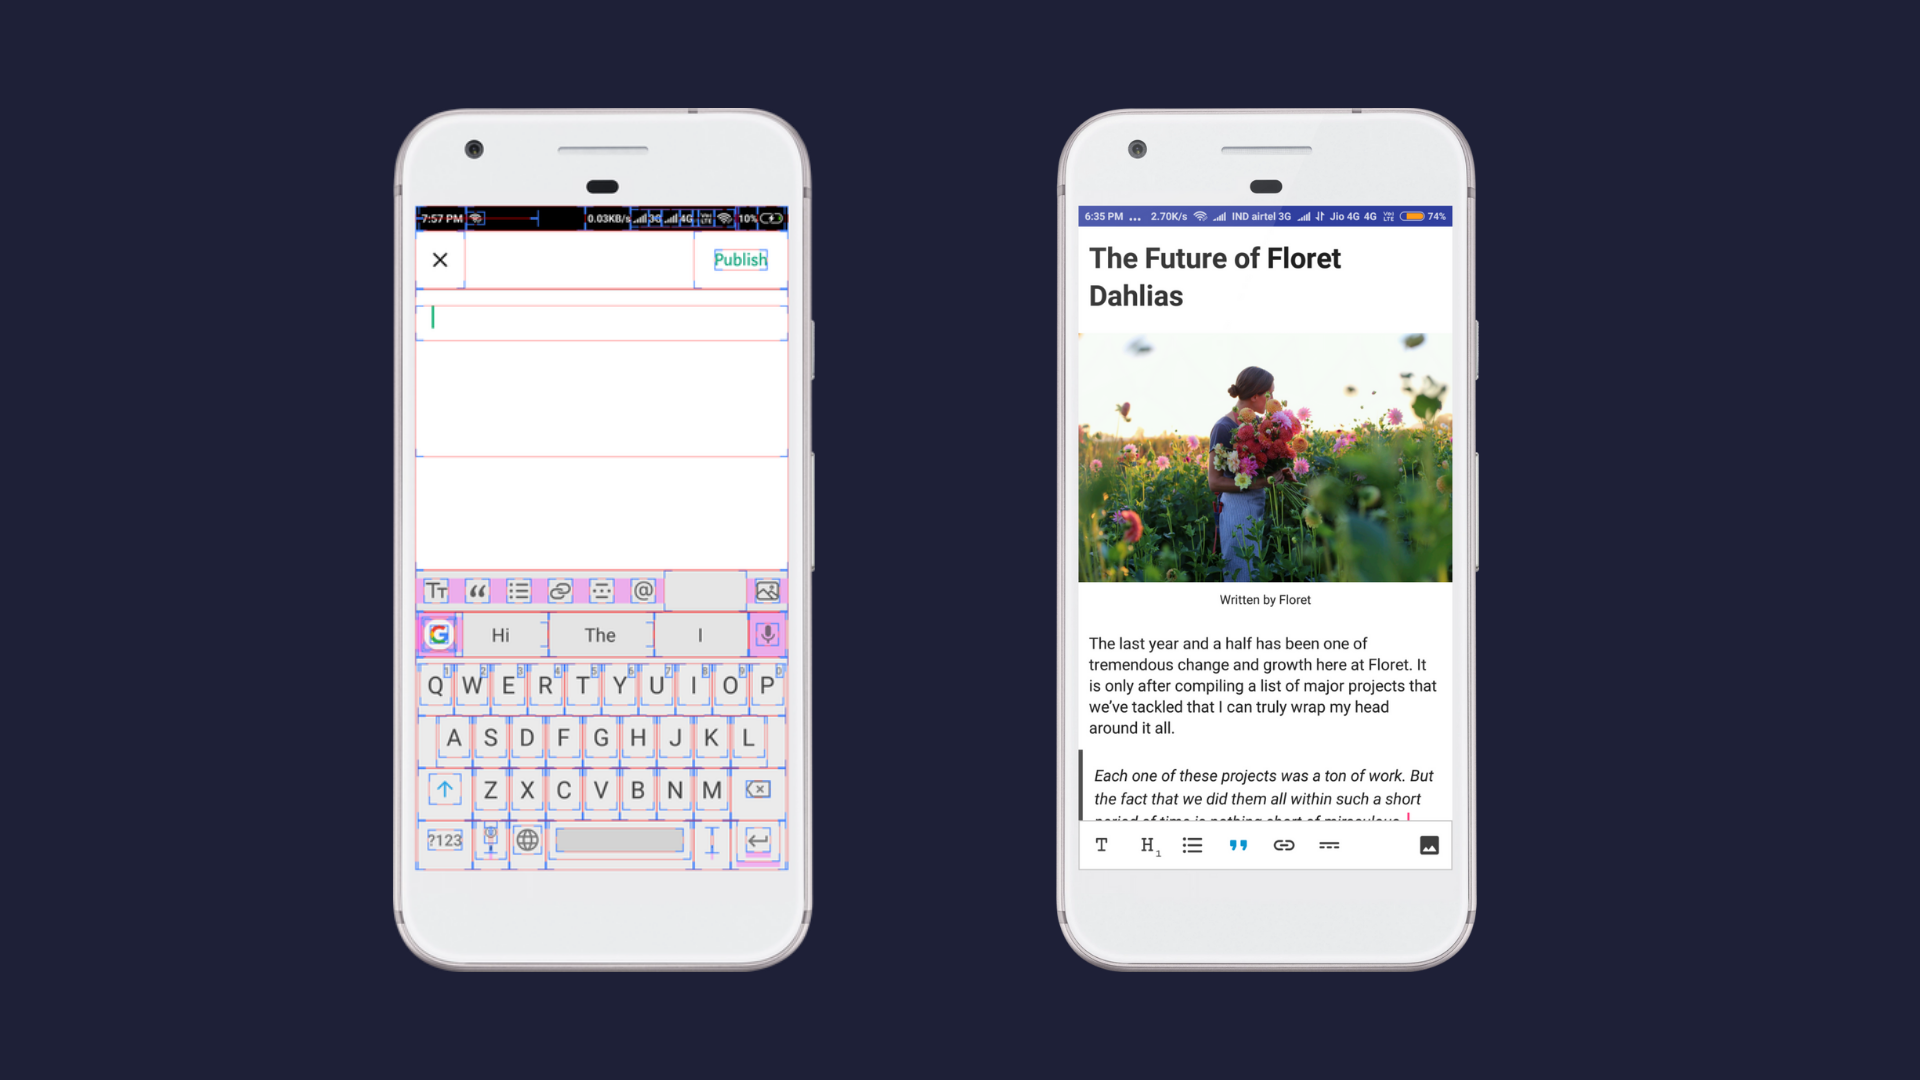 How to develop a WYSIWYG editor in Android - By Ankit kumar